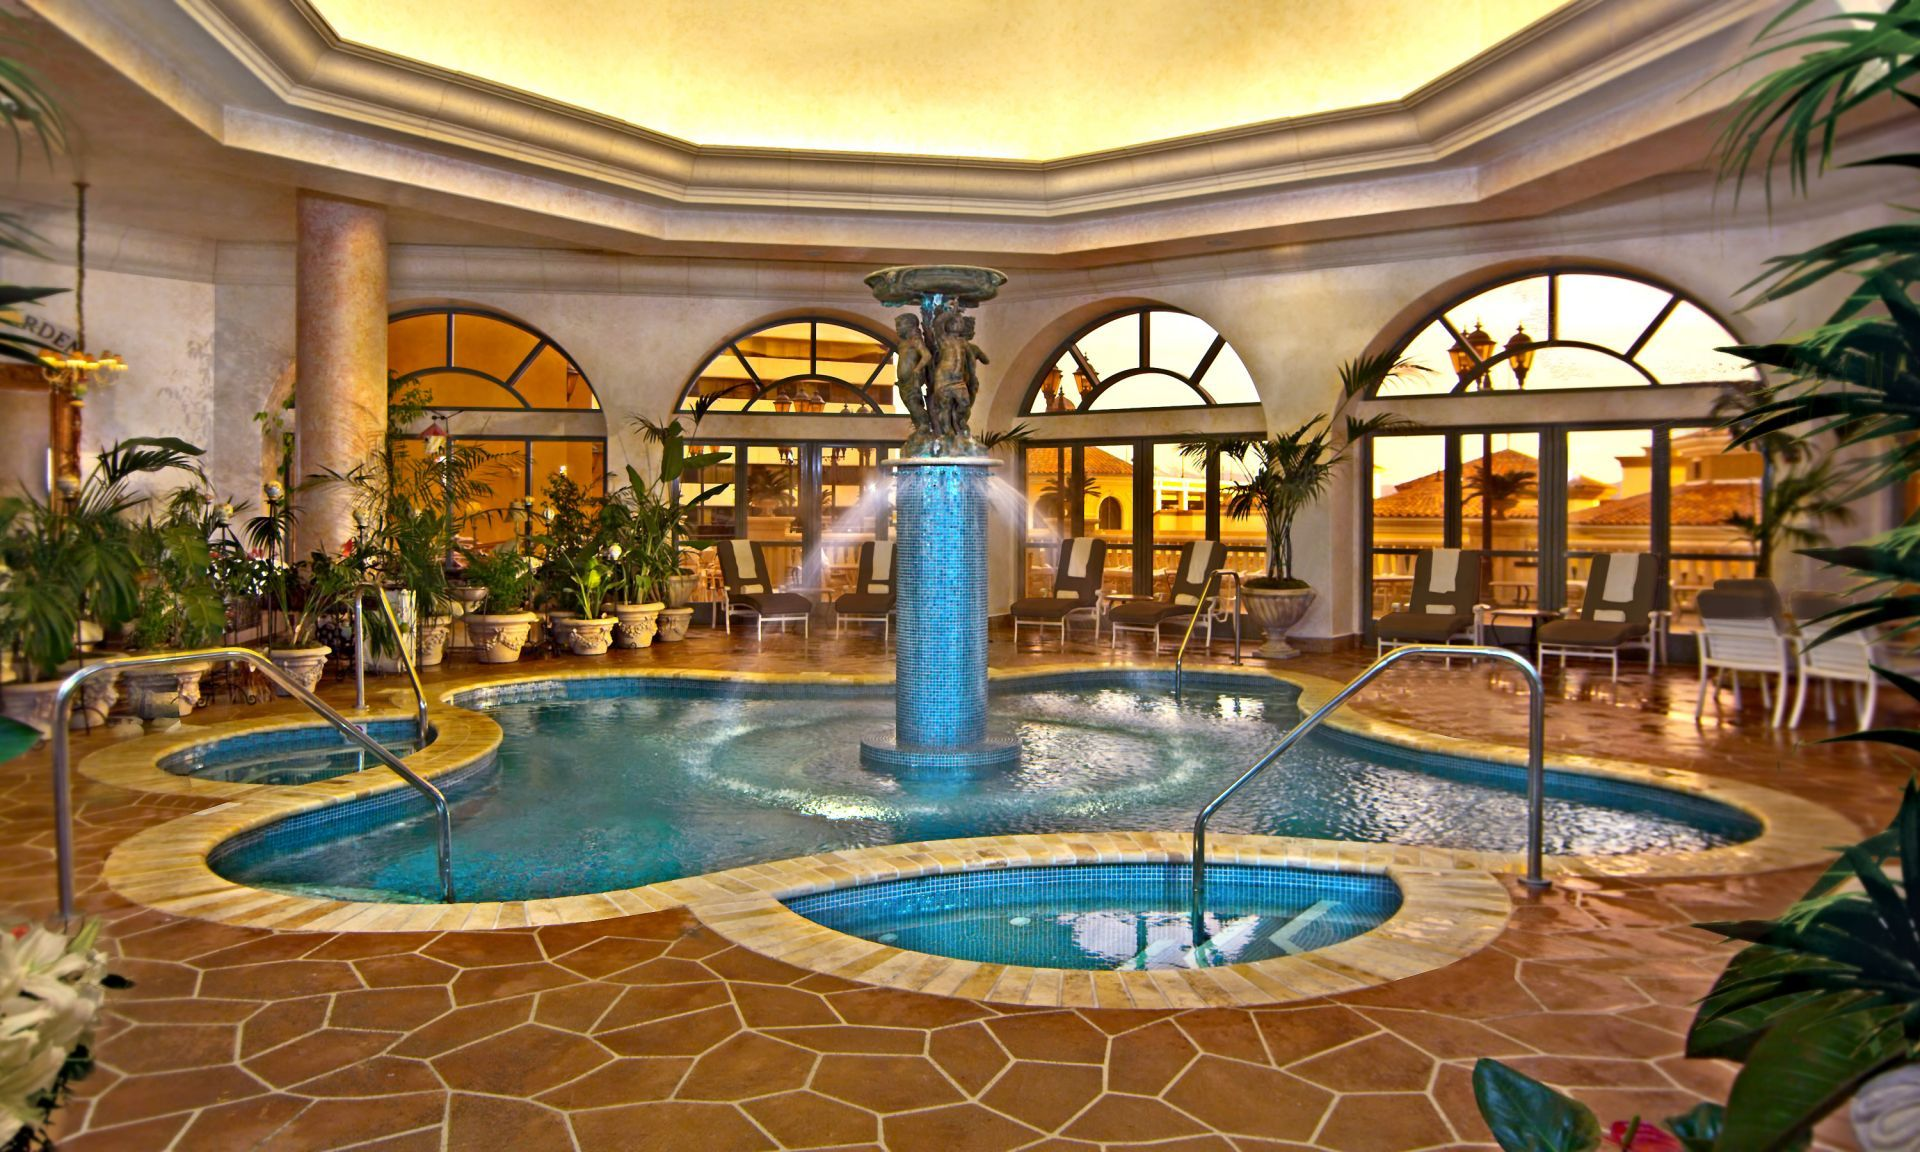 Spa Toscana Reno S Best And Salon Peppermill Nv Gestlittlecity